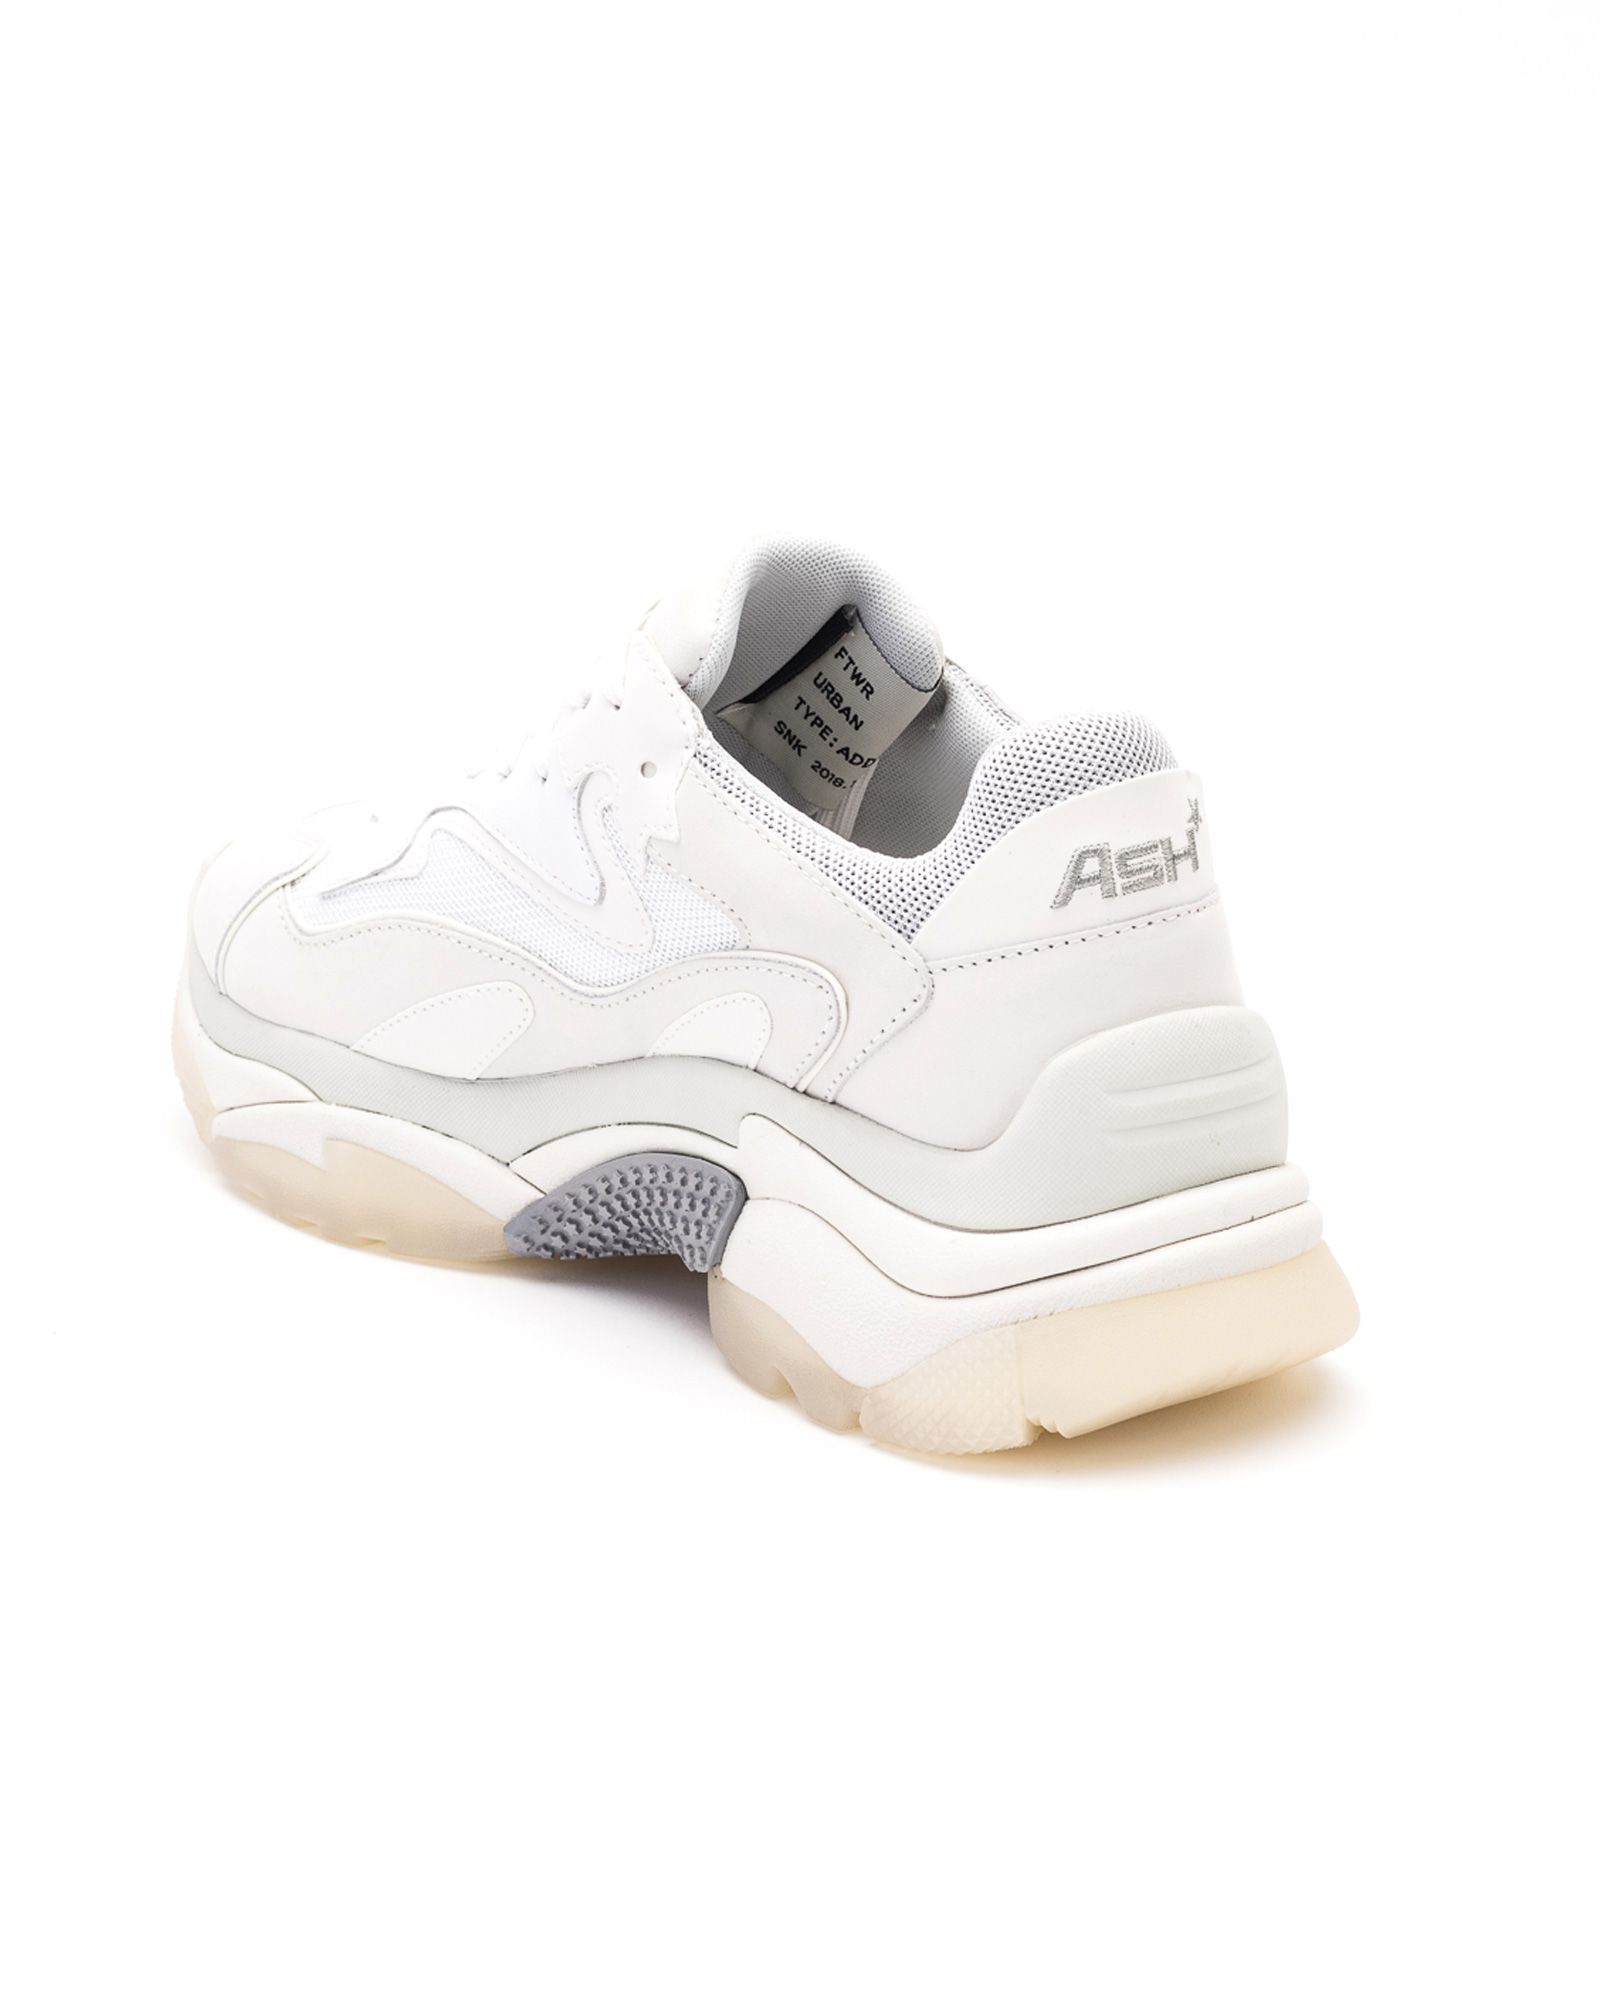 Ash Addict Bis Sneakers In White   ModeSens